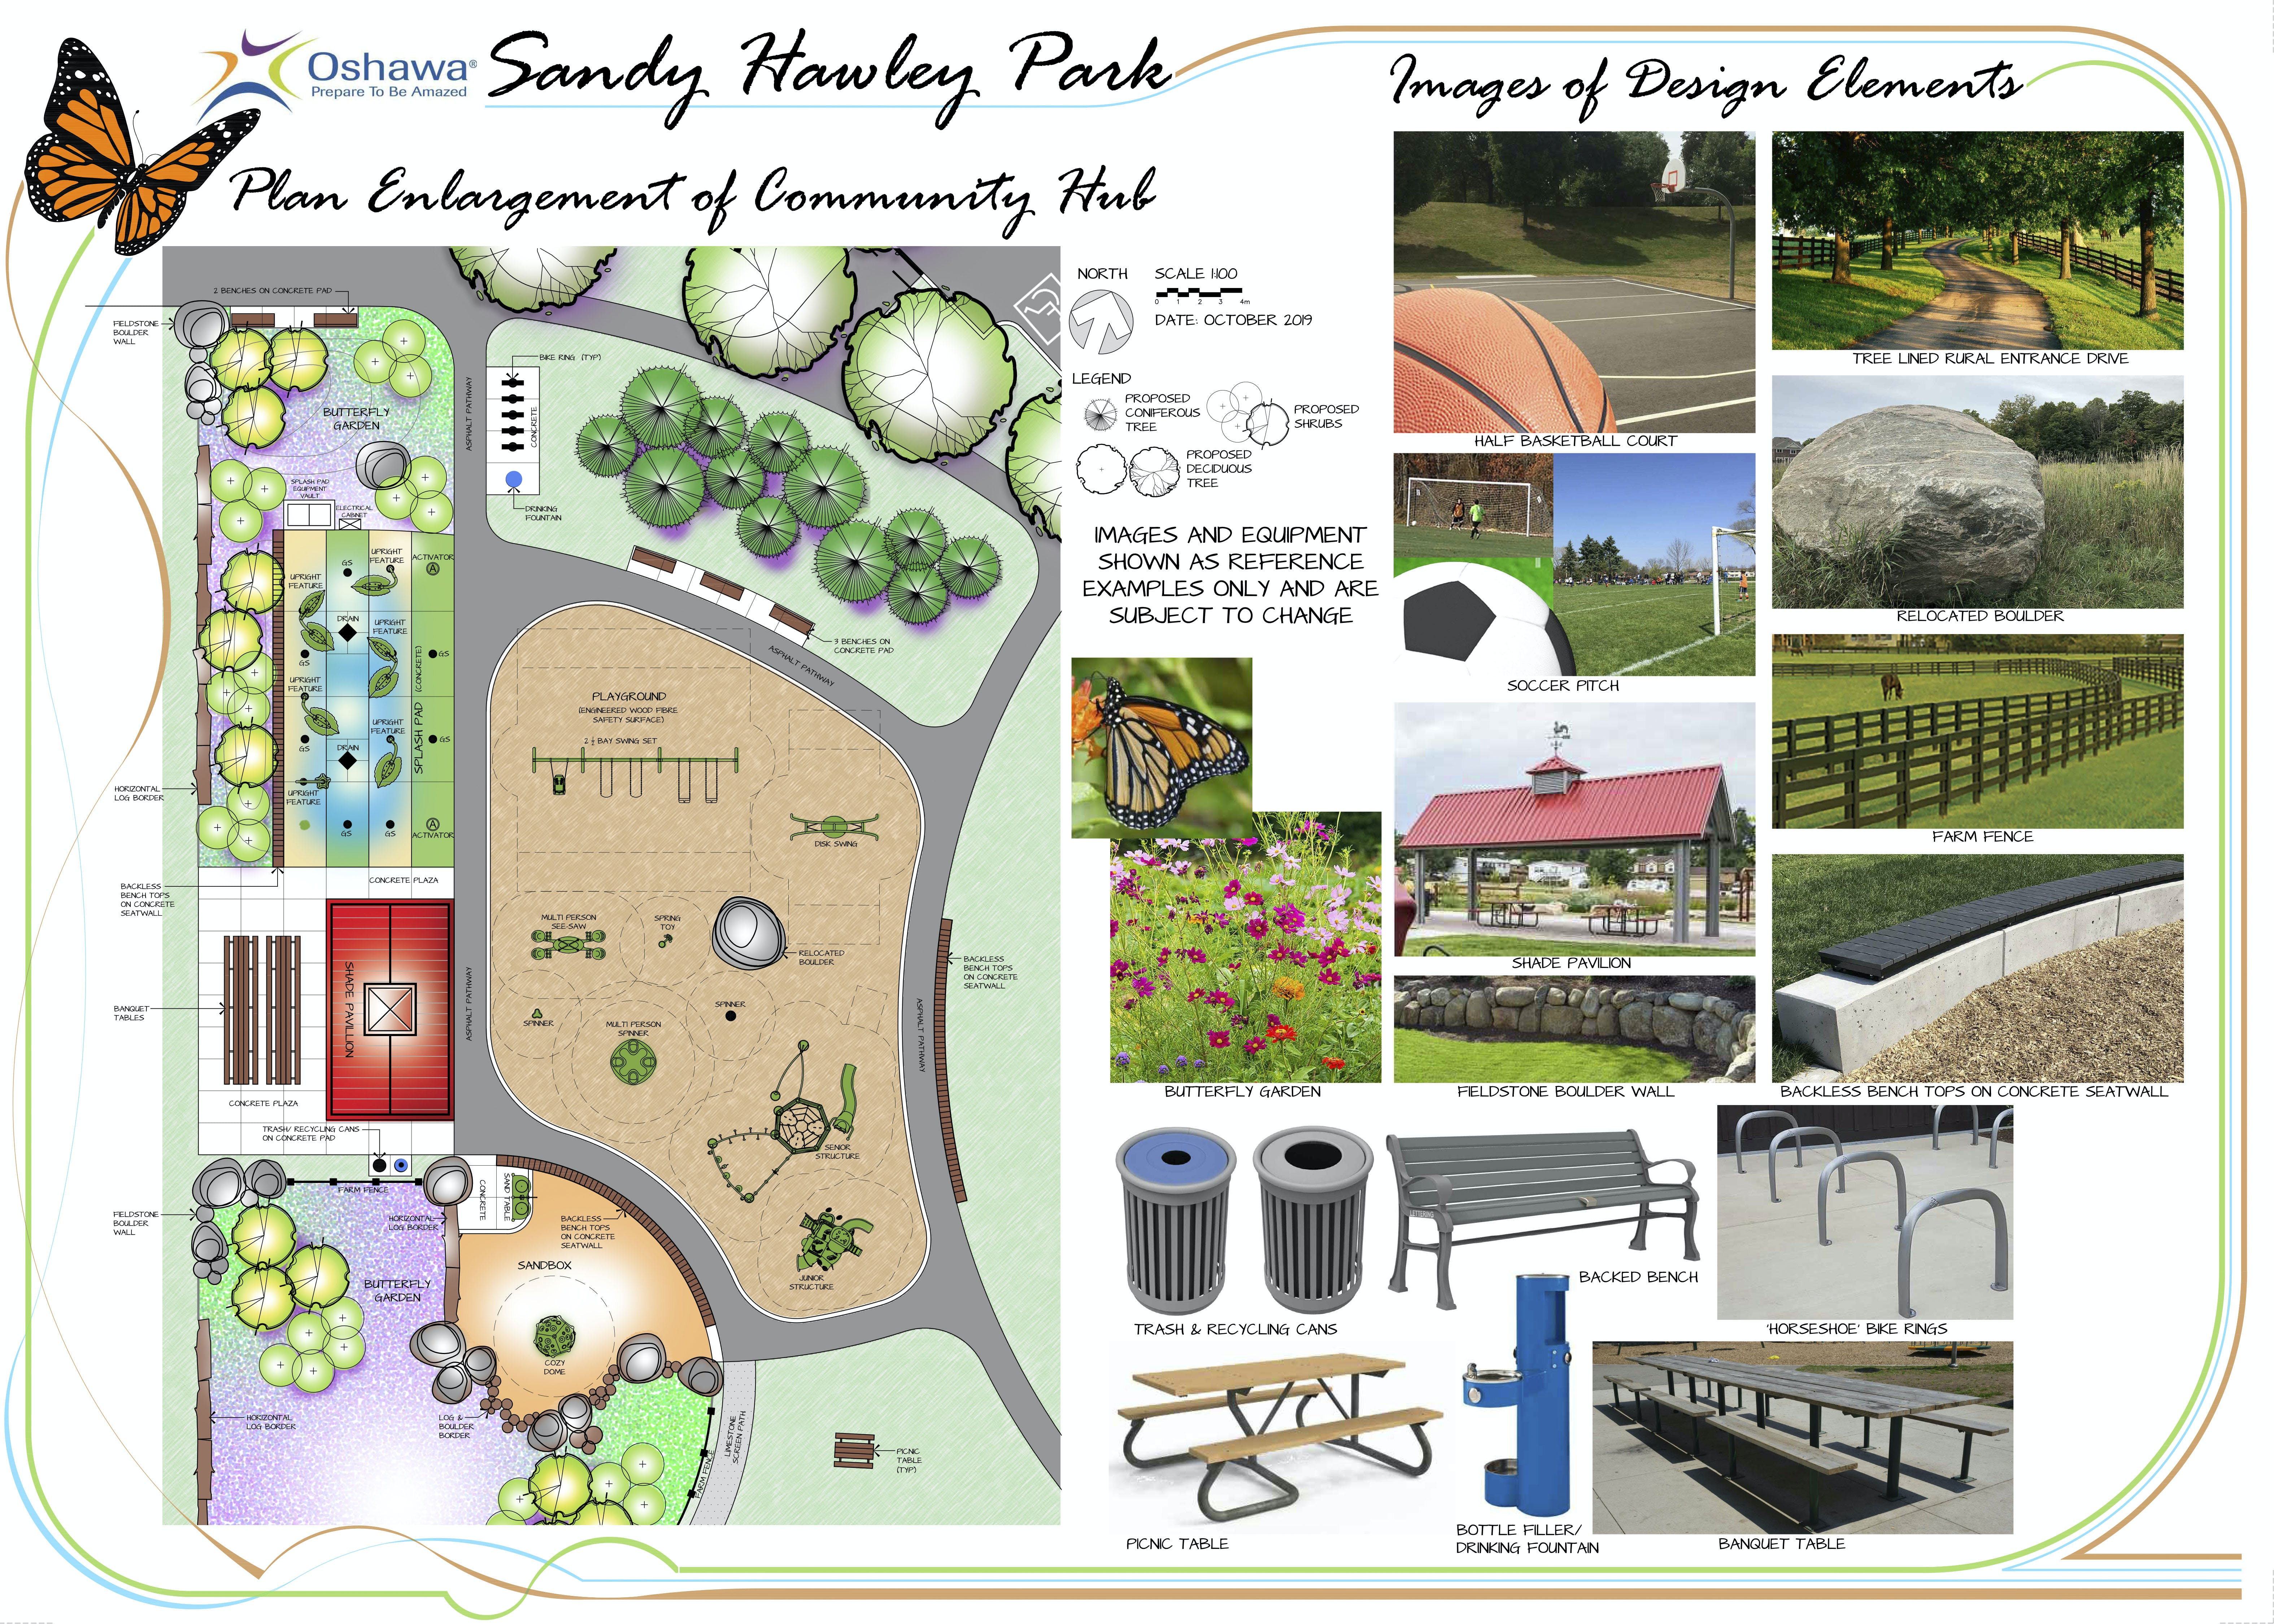 Sandy Hawley Park Plan Enlargement